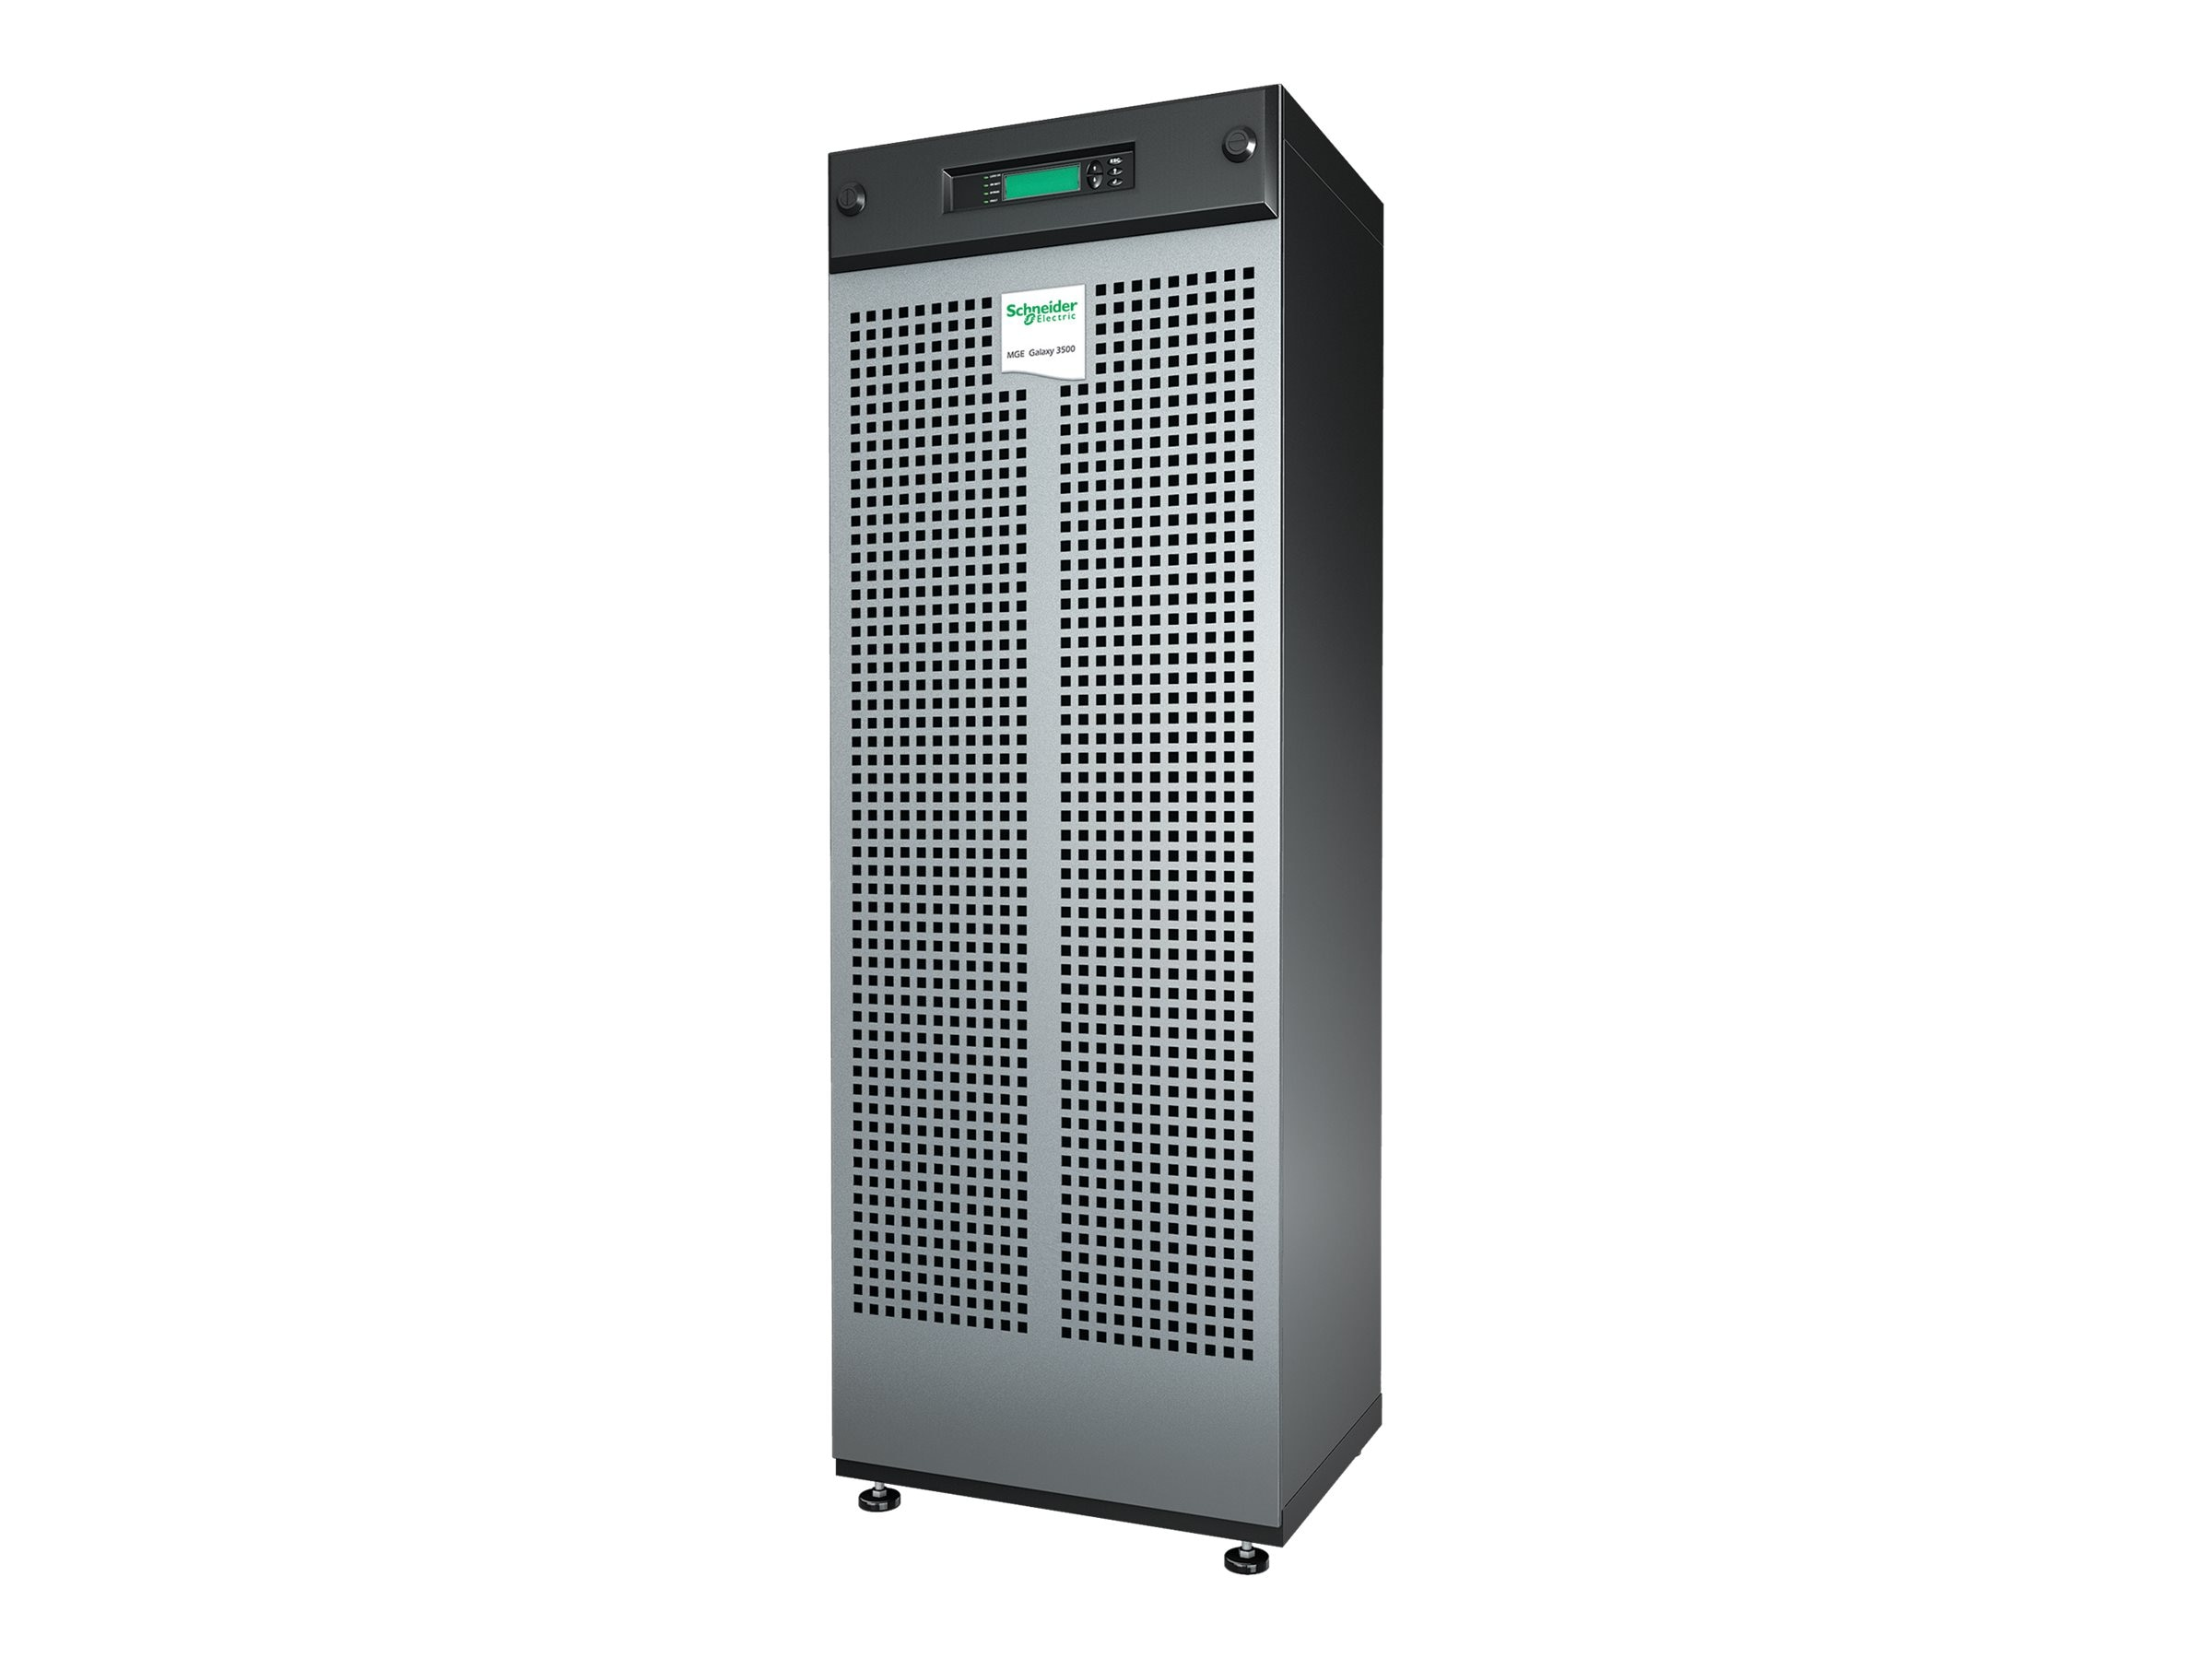 APC Galaxy 3500 10kVA 8kW 208V with (4) Battery Modules, Start-up 5x8, G35T10KF4B4S